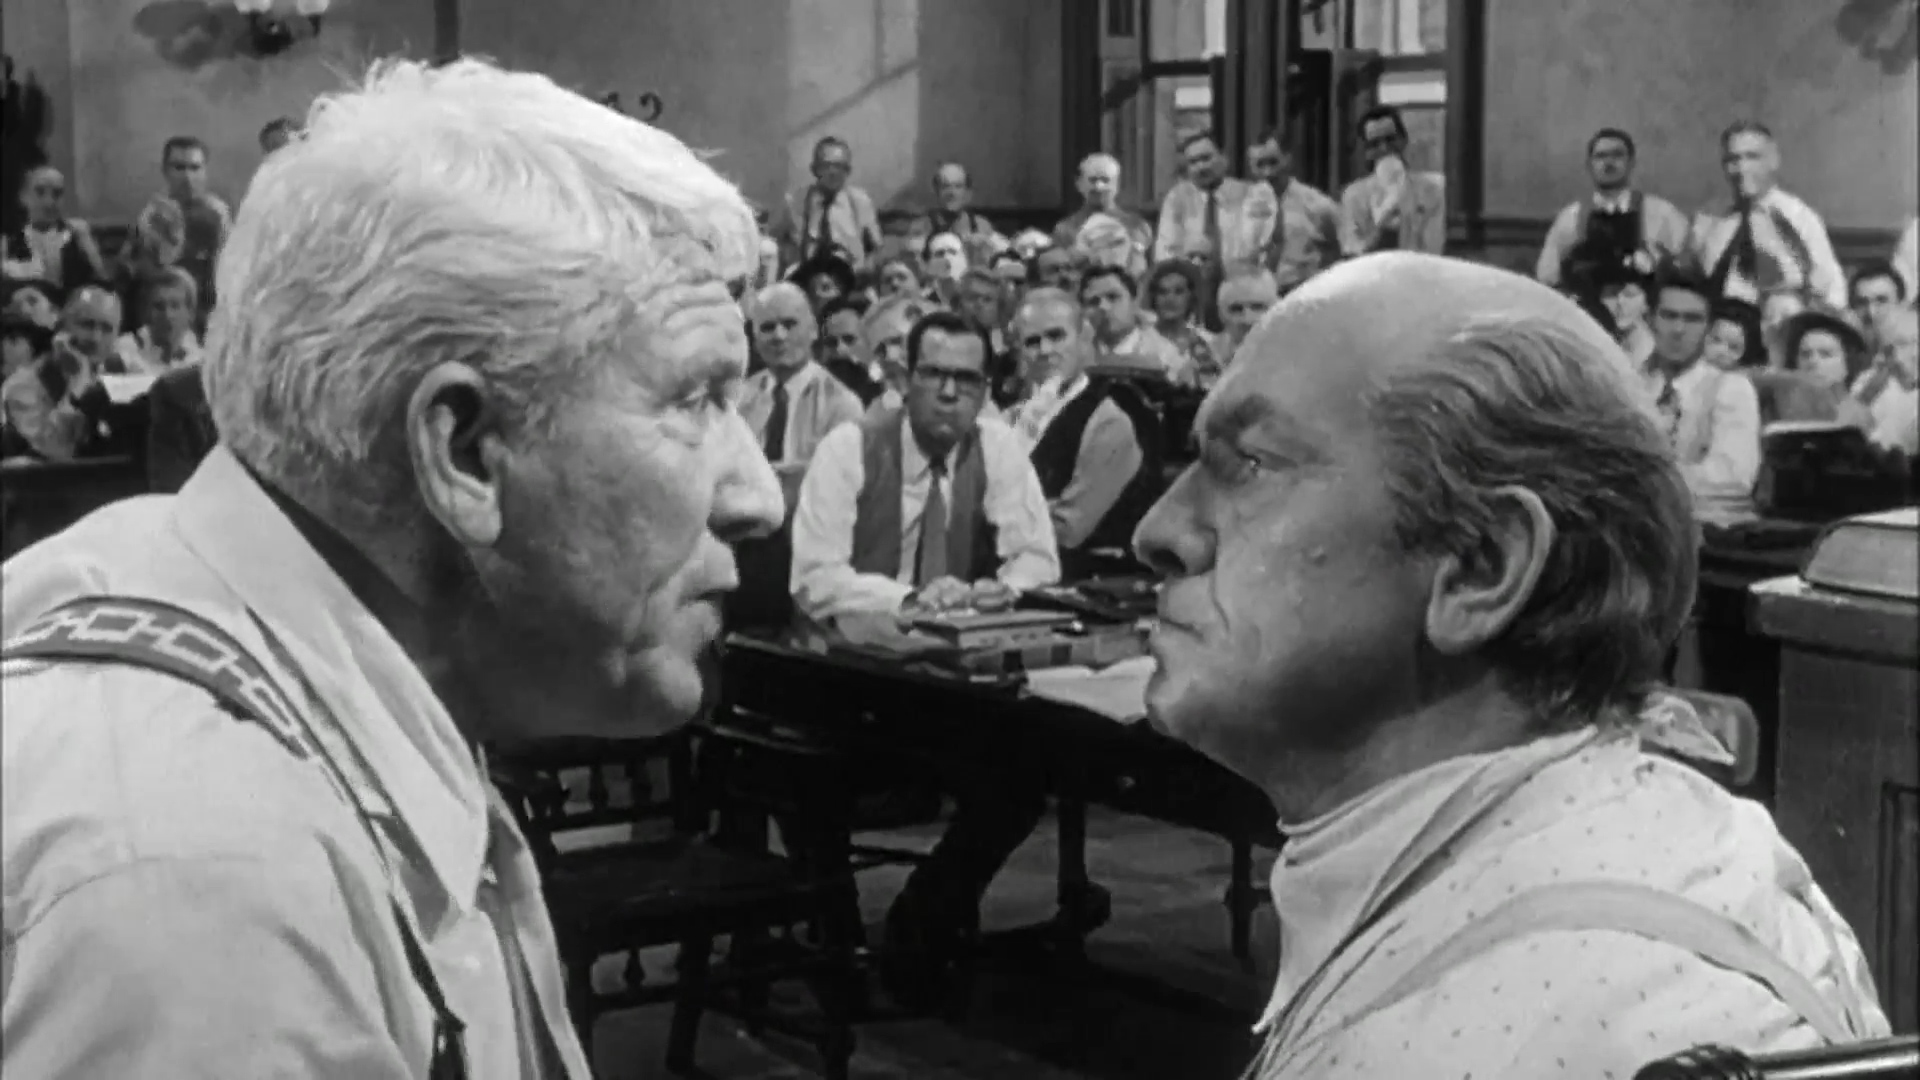 an analysis of the movie inherit the wind by jerome lawrence and robert e lee Monkeynotes-inherit the wind by jerome lawrence & robert e lee table of contents jerome lawrence and robert e lee wrote inherit the and auntie mame jerome lawrence also wrote actor: the life and times of paul muni inherit the wind was made into a movie in the 1960s table of.